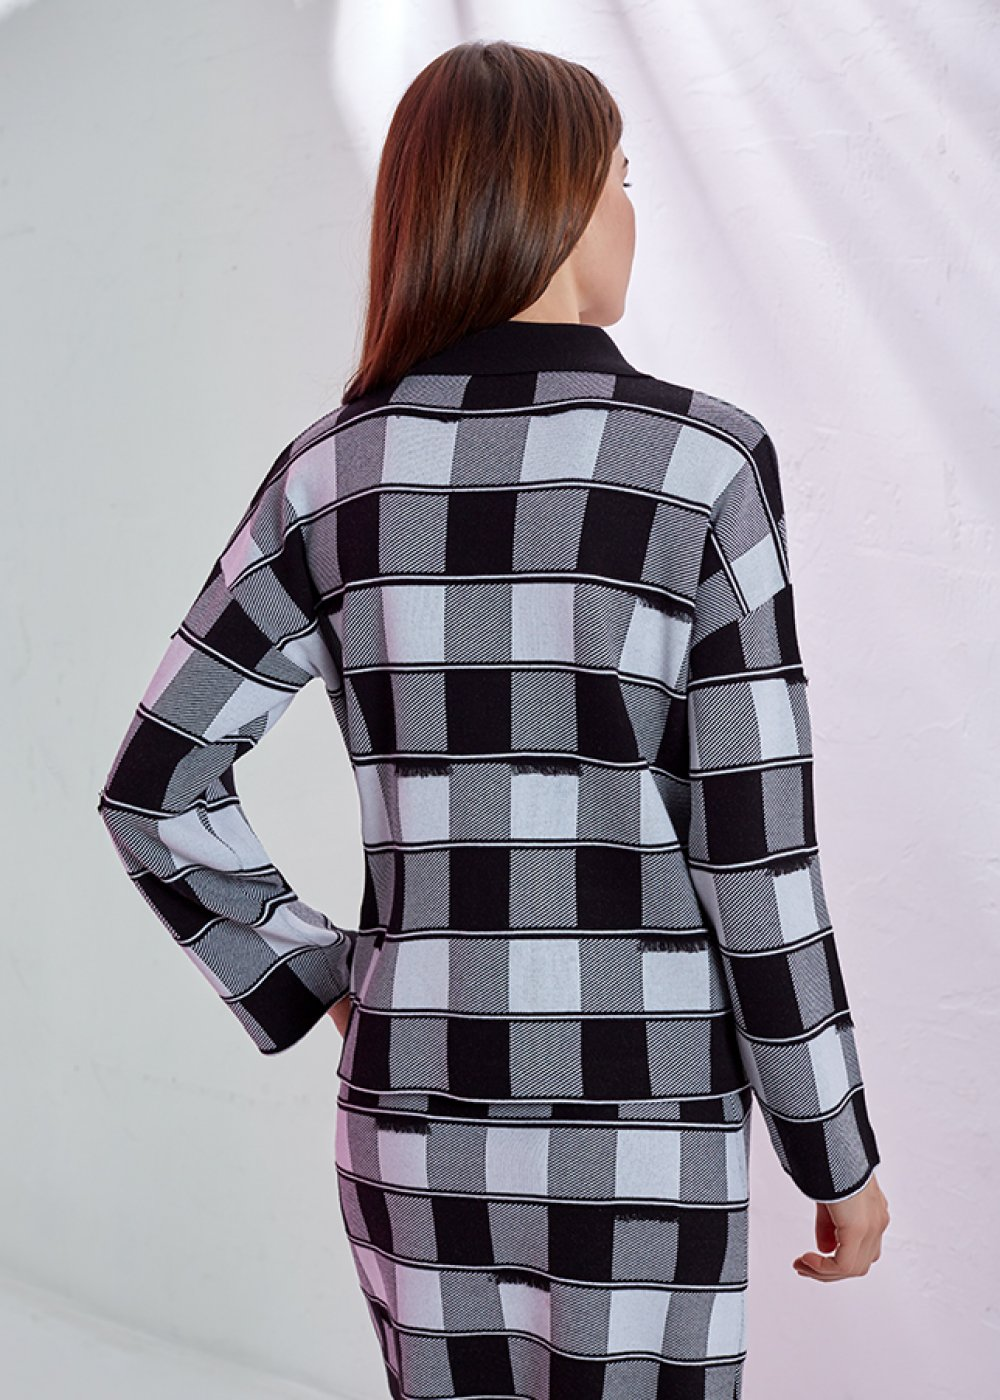 DAMA PATTERNED KNIT JACKET